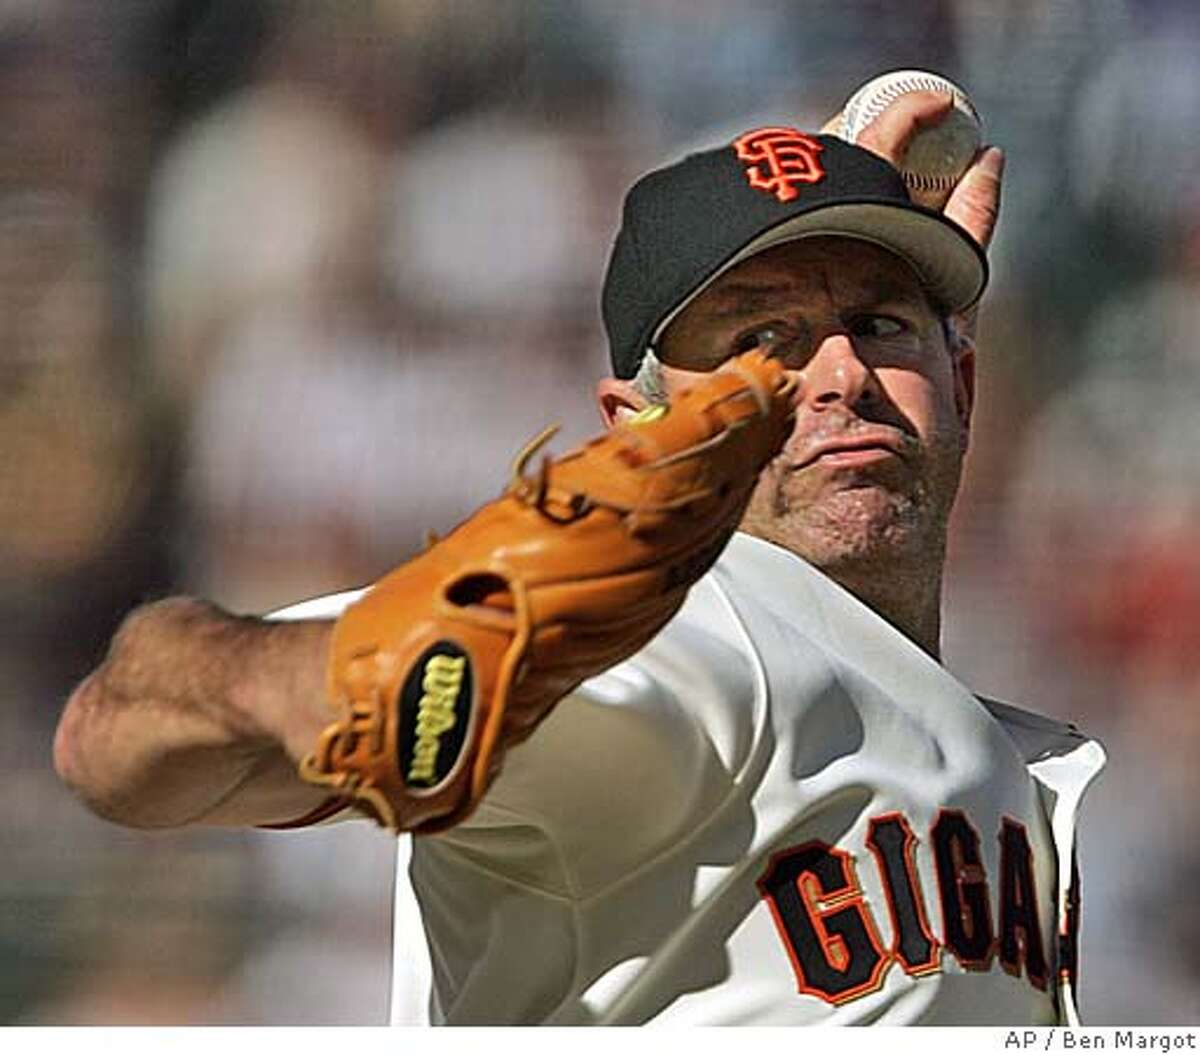 San Francisco Giants' Jeff Fassero works against the Oakland Athletics in the first inning Saturday, May 21, 2005, in San Francisco. (AP Photo/Ben Margot)